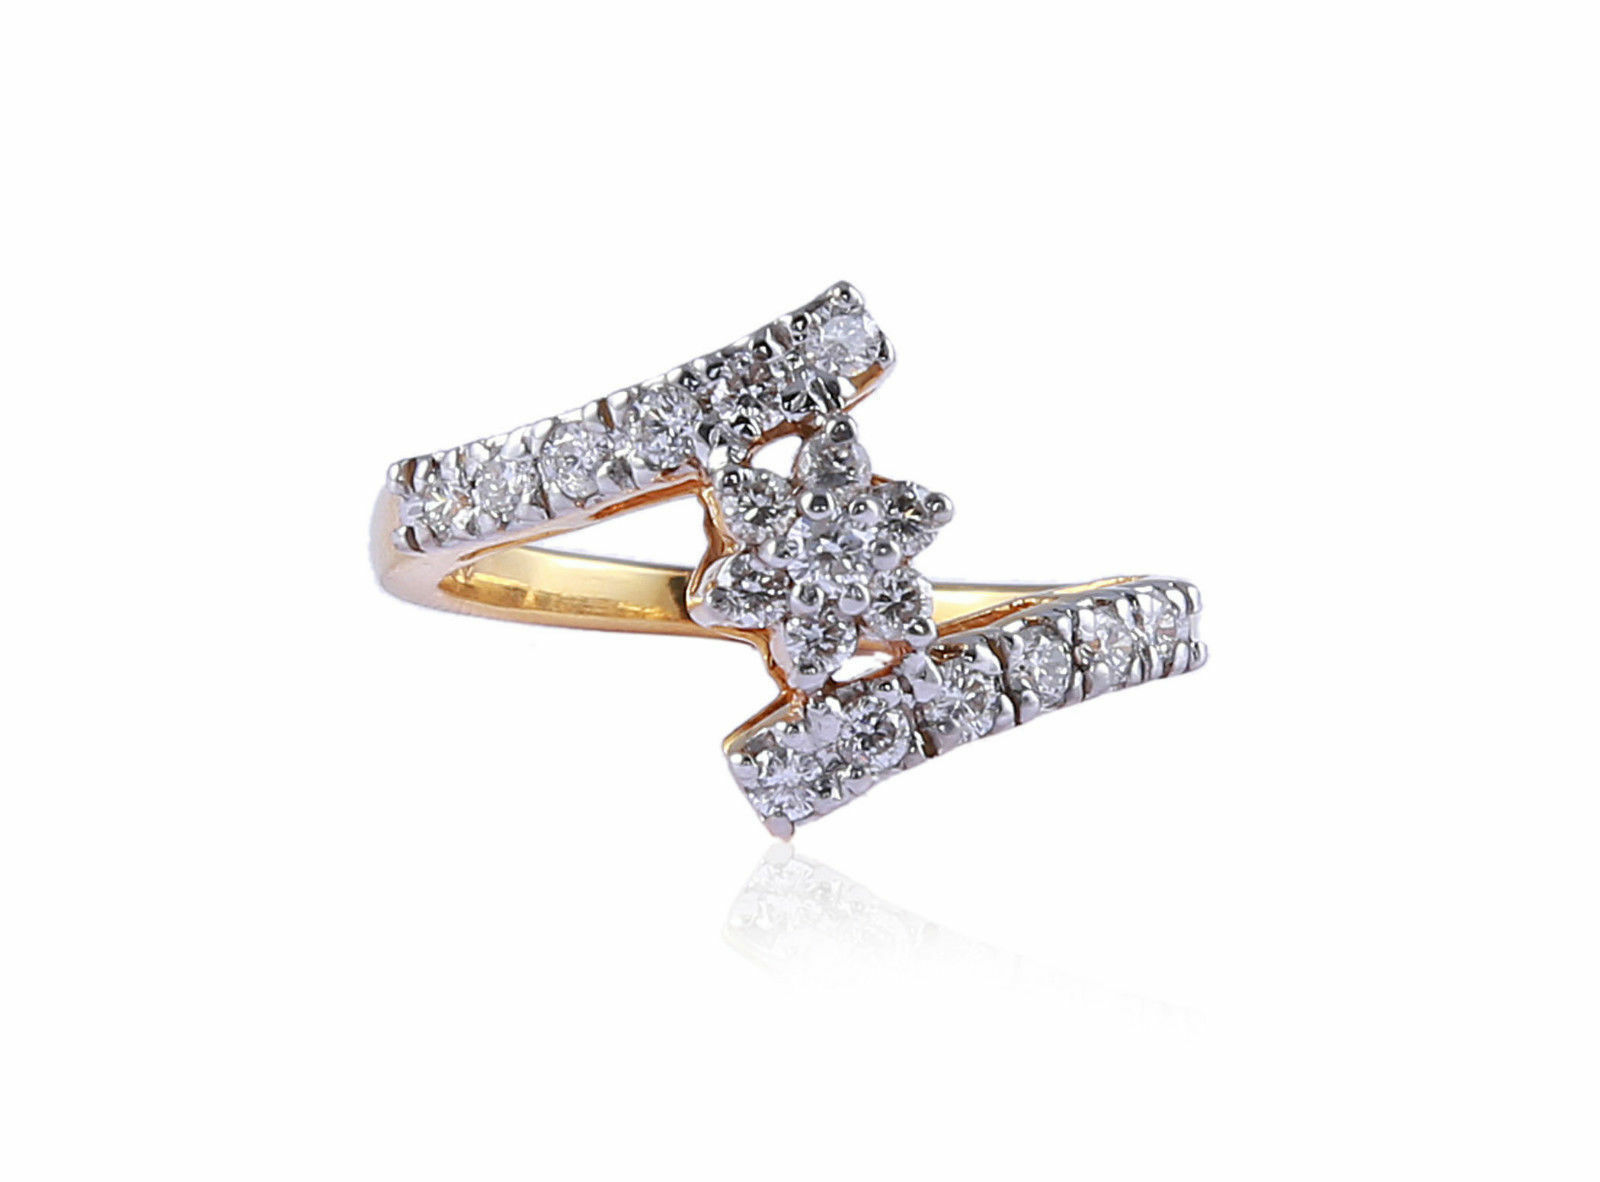 Pave 0.53 Cts Round Brilliant Cut Diamonds Engagement Ring In Solid 18Karat gold